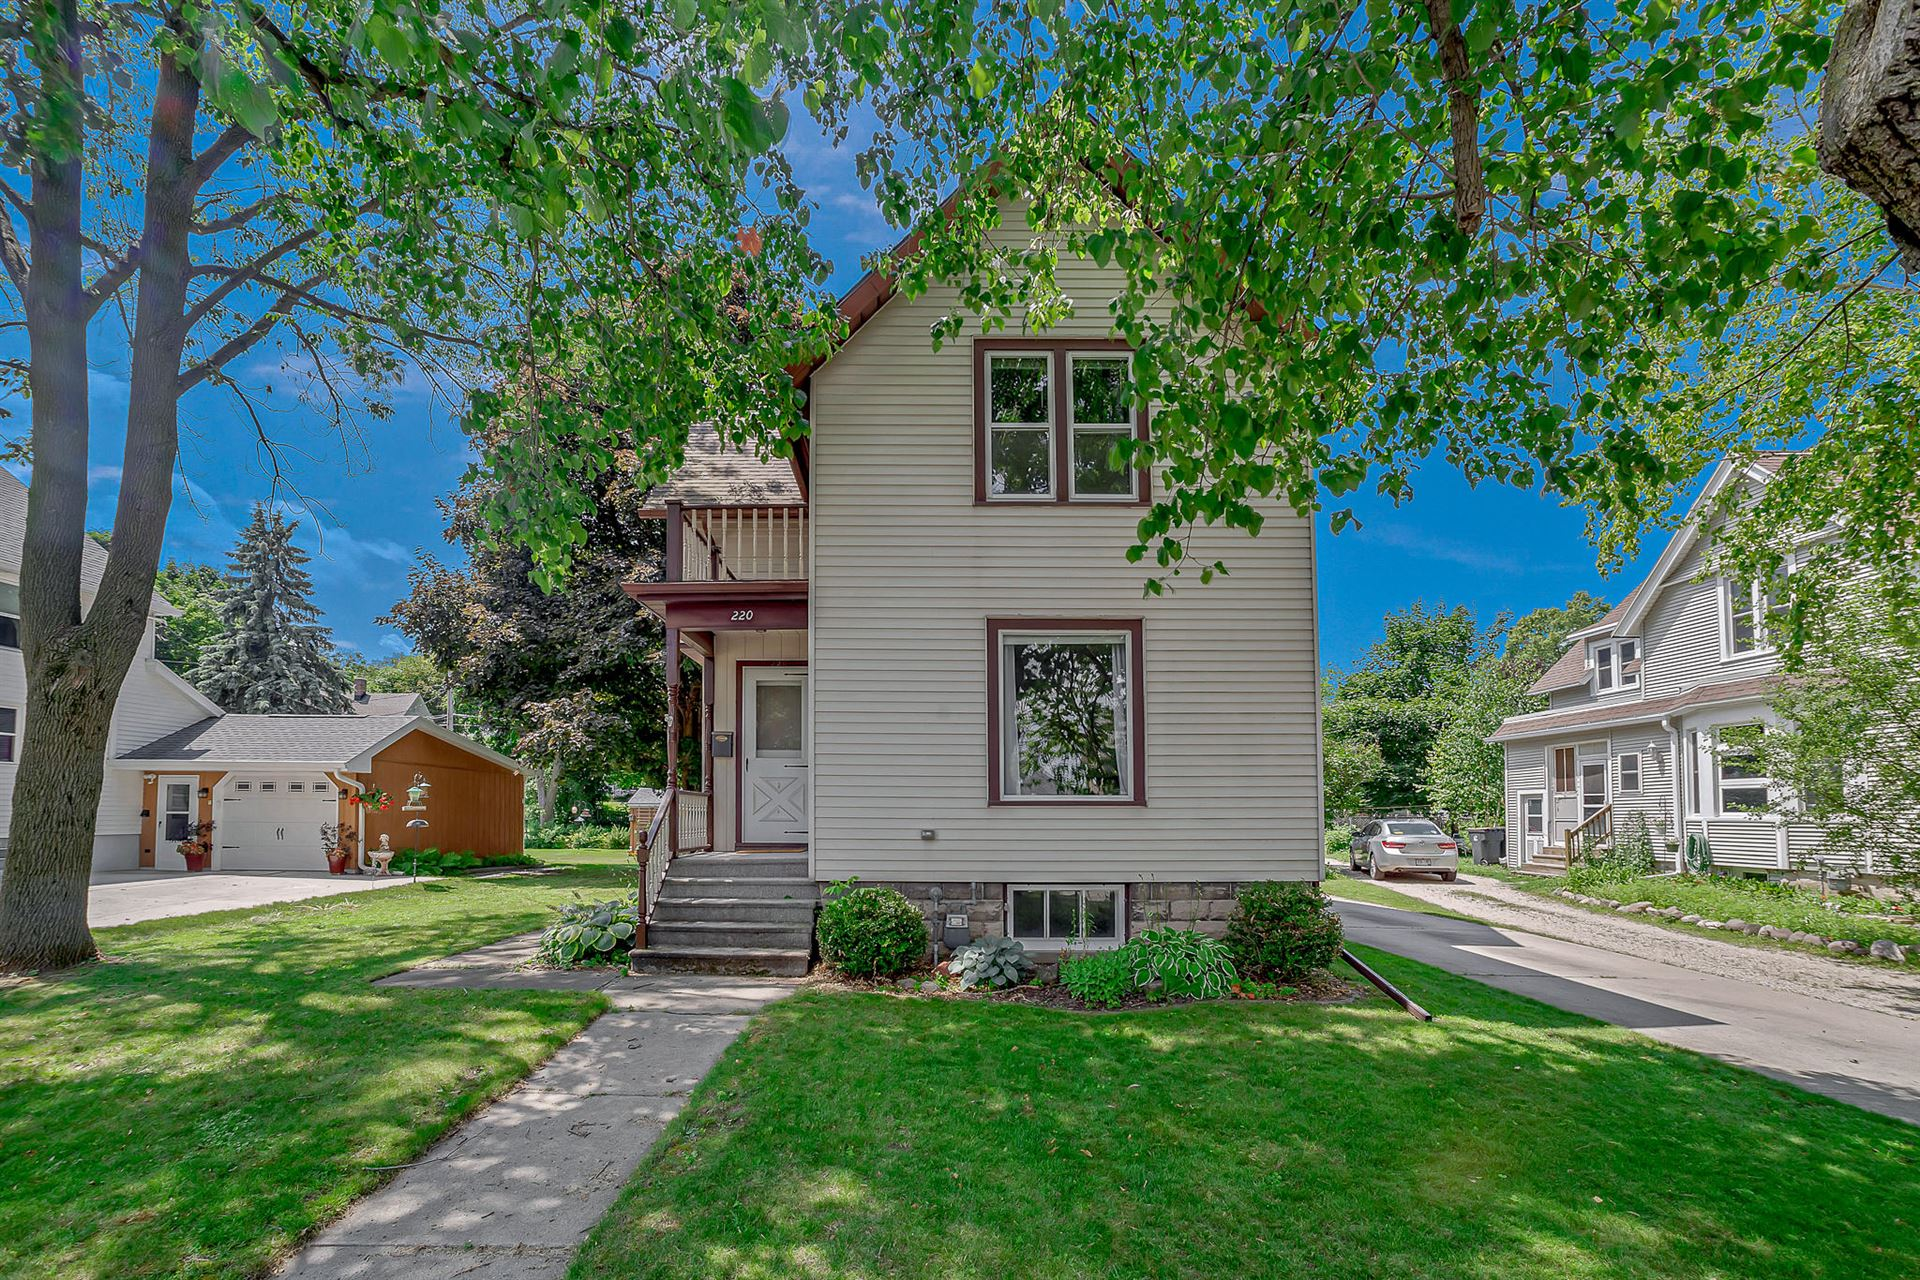 220 Plymouth ST, Plymouth, WI 53073 - #: 1698025